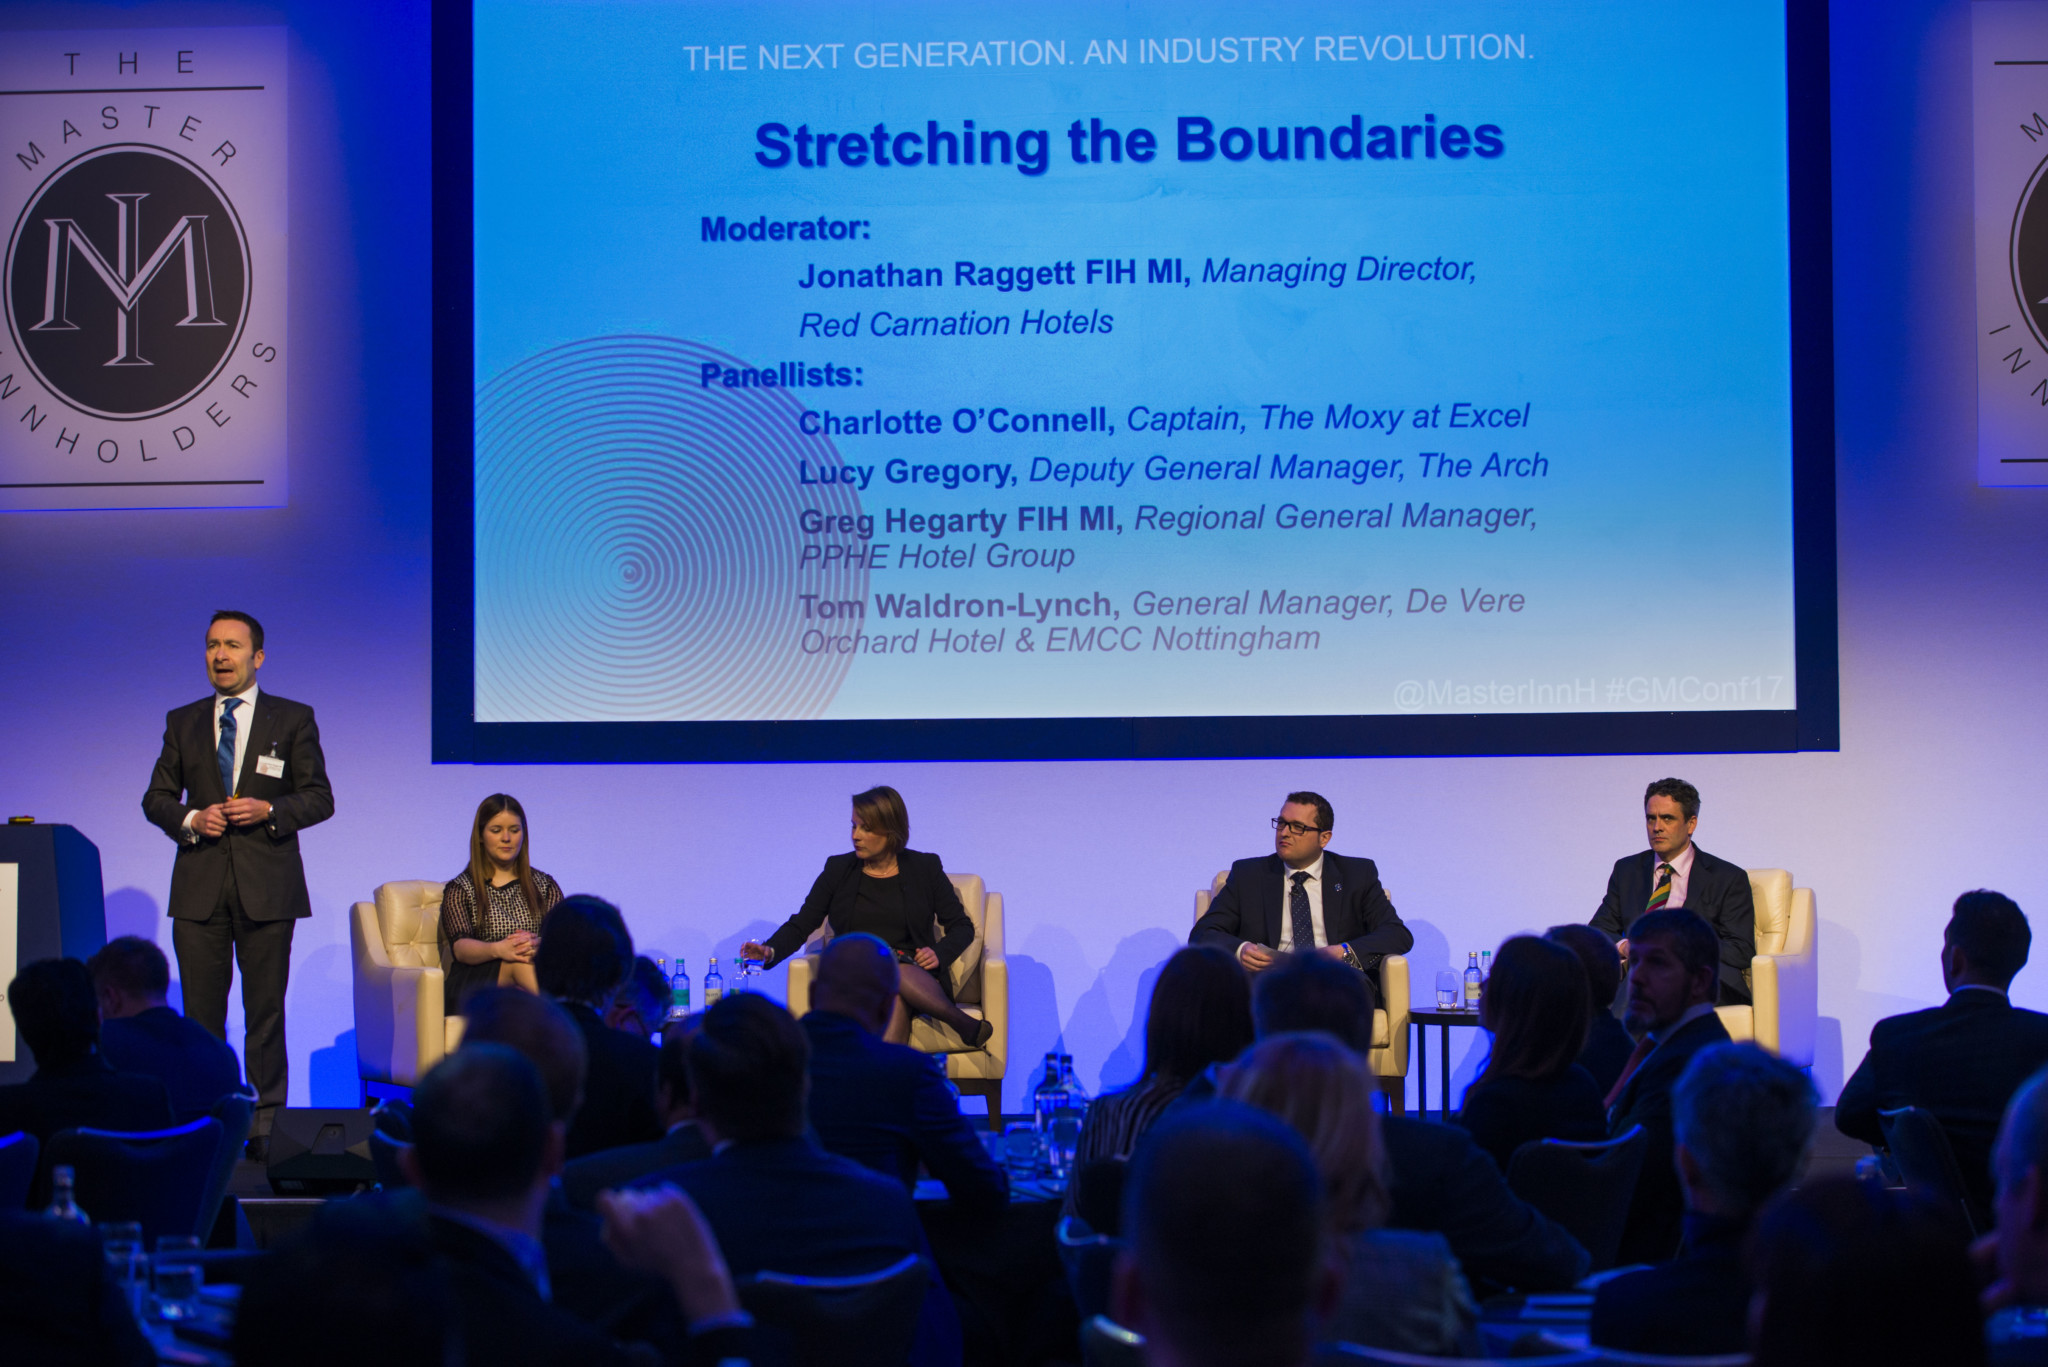 Stretching the boundaries panel